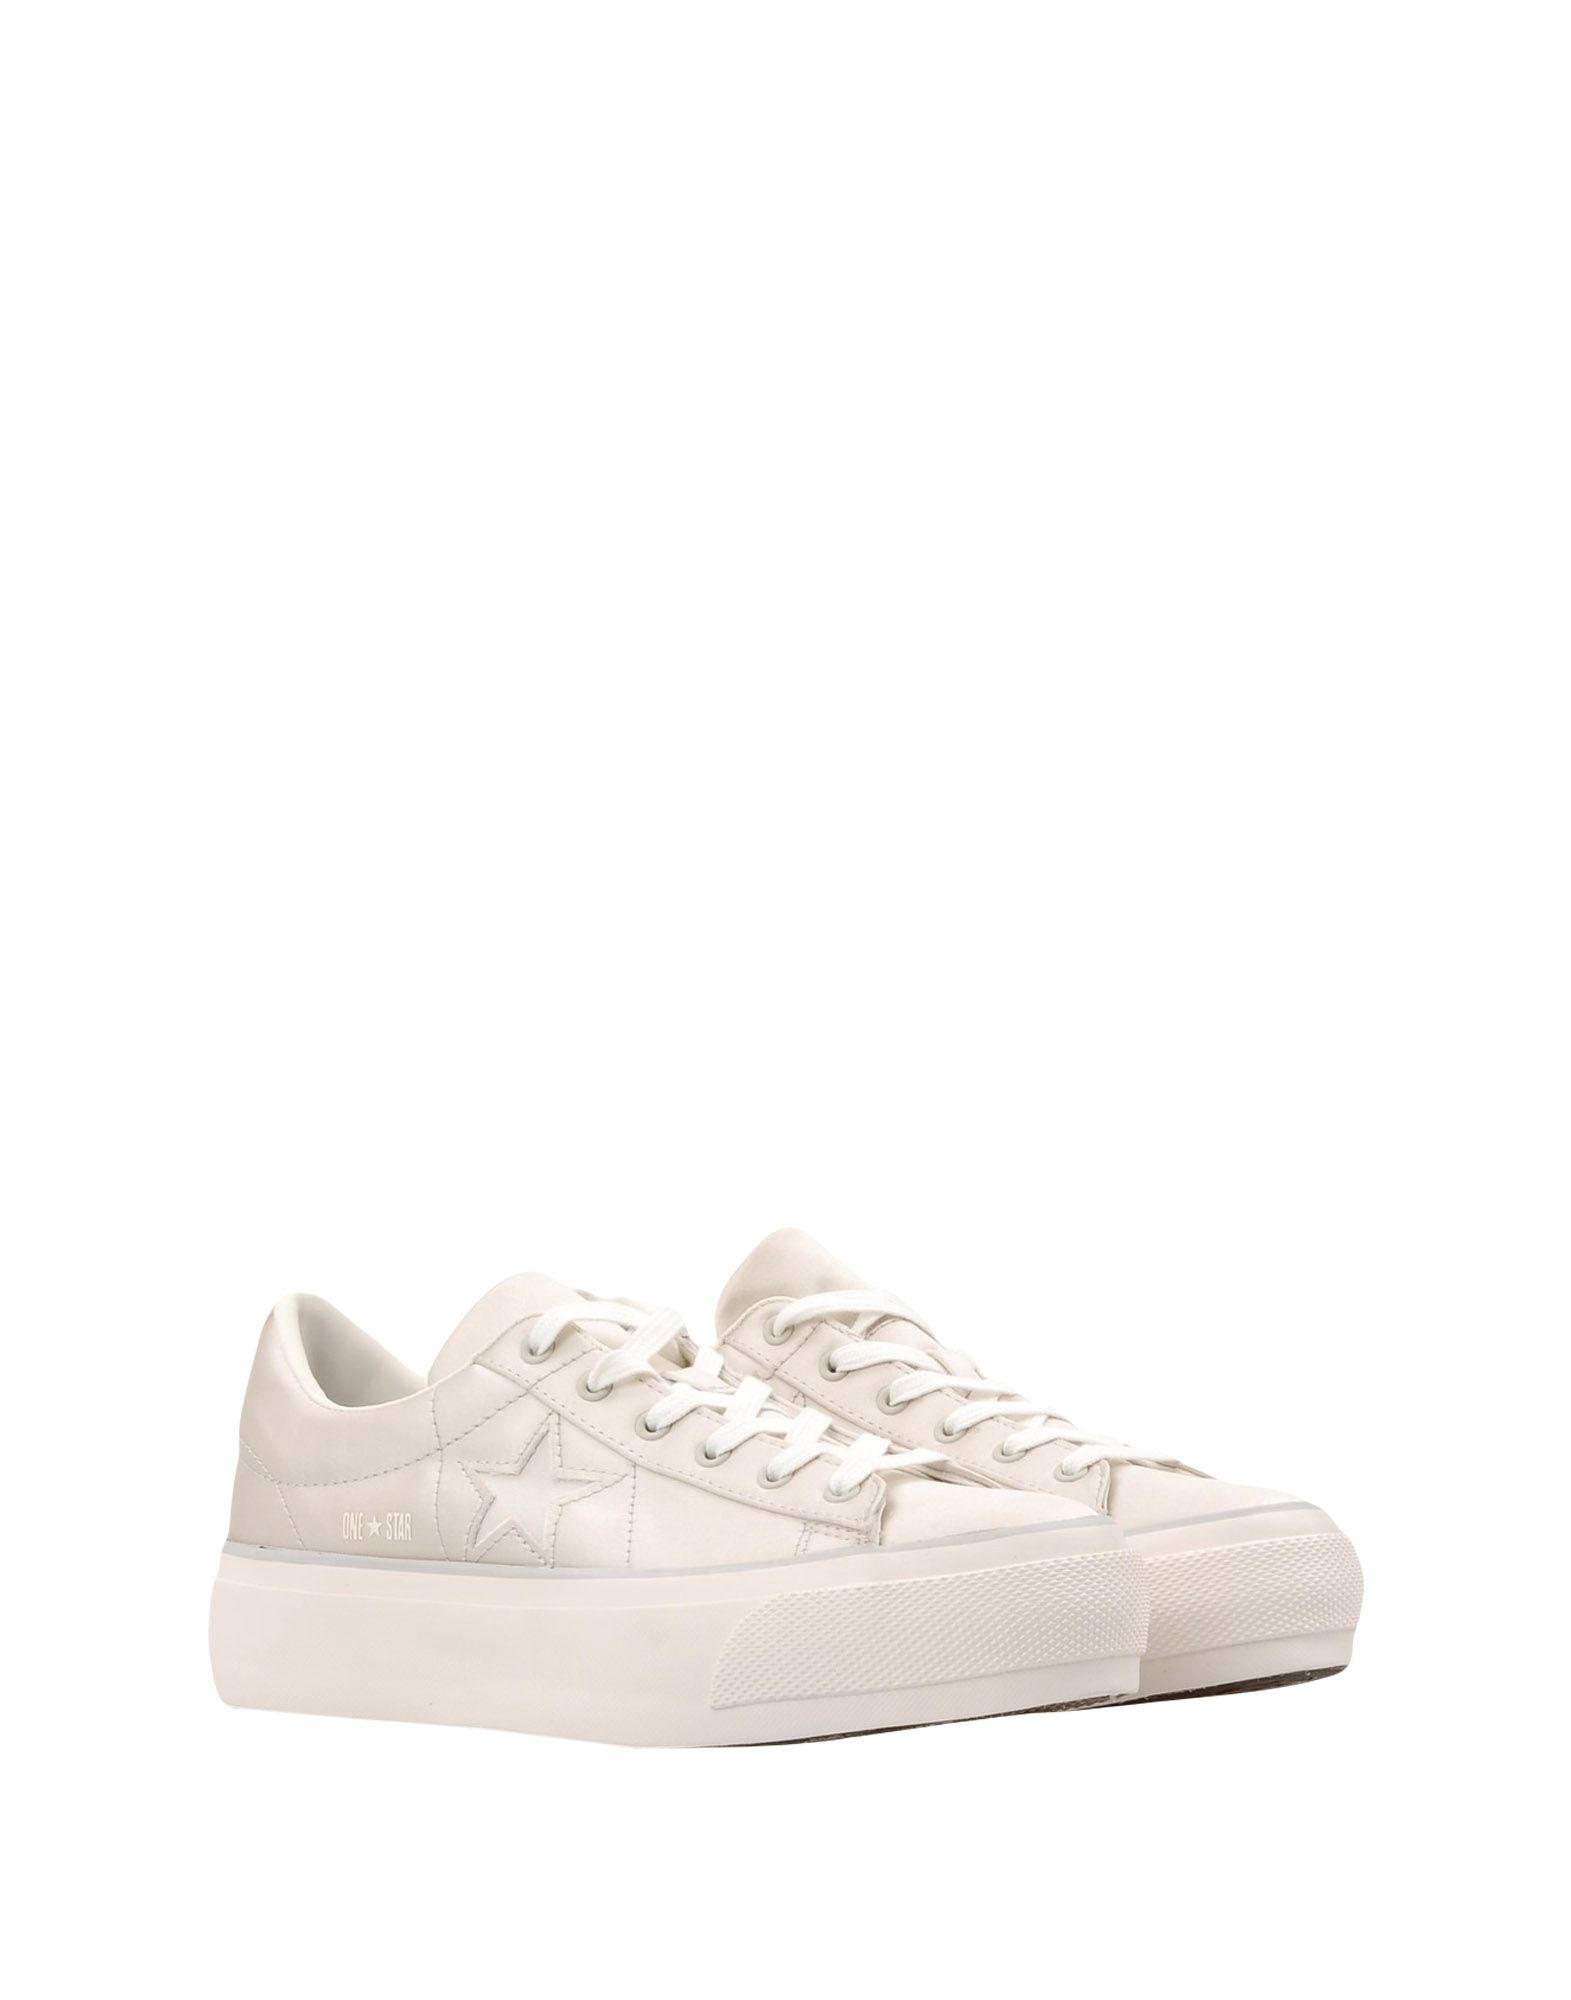 Sneakers Converse All Star One Star Platform Satin - Femme - Sneakers Converse All Star sur